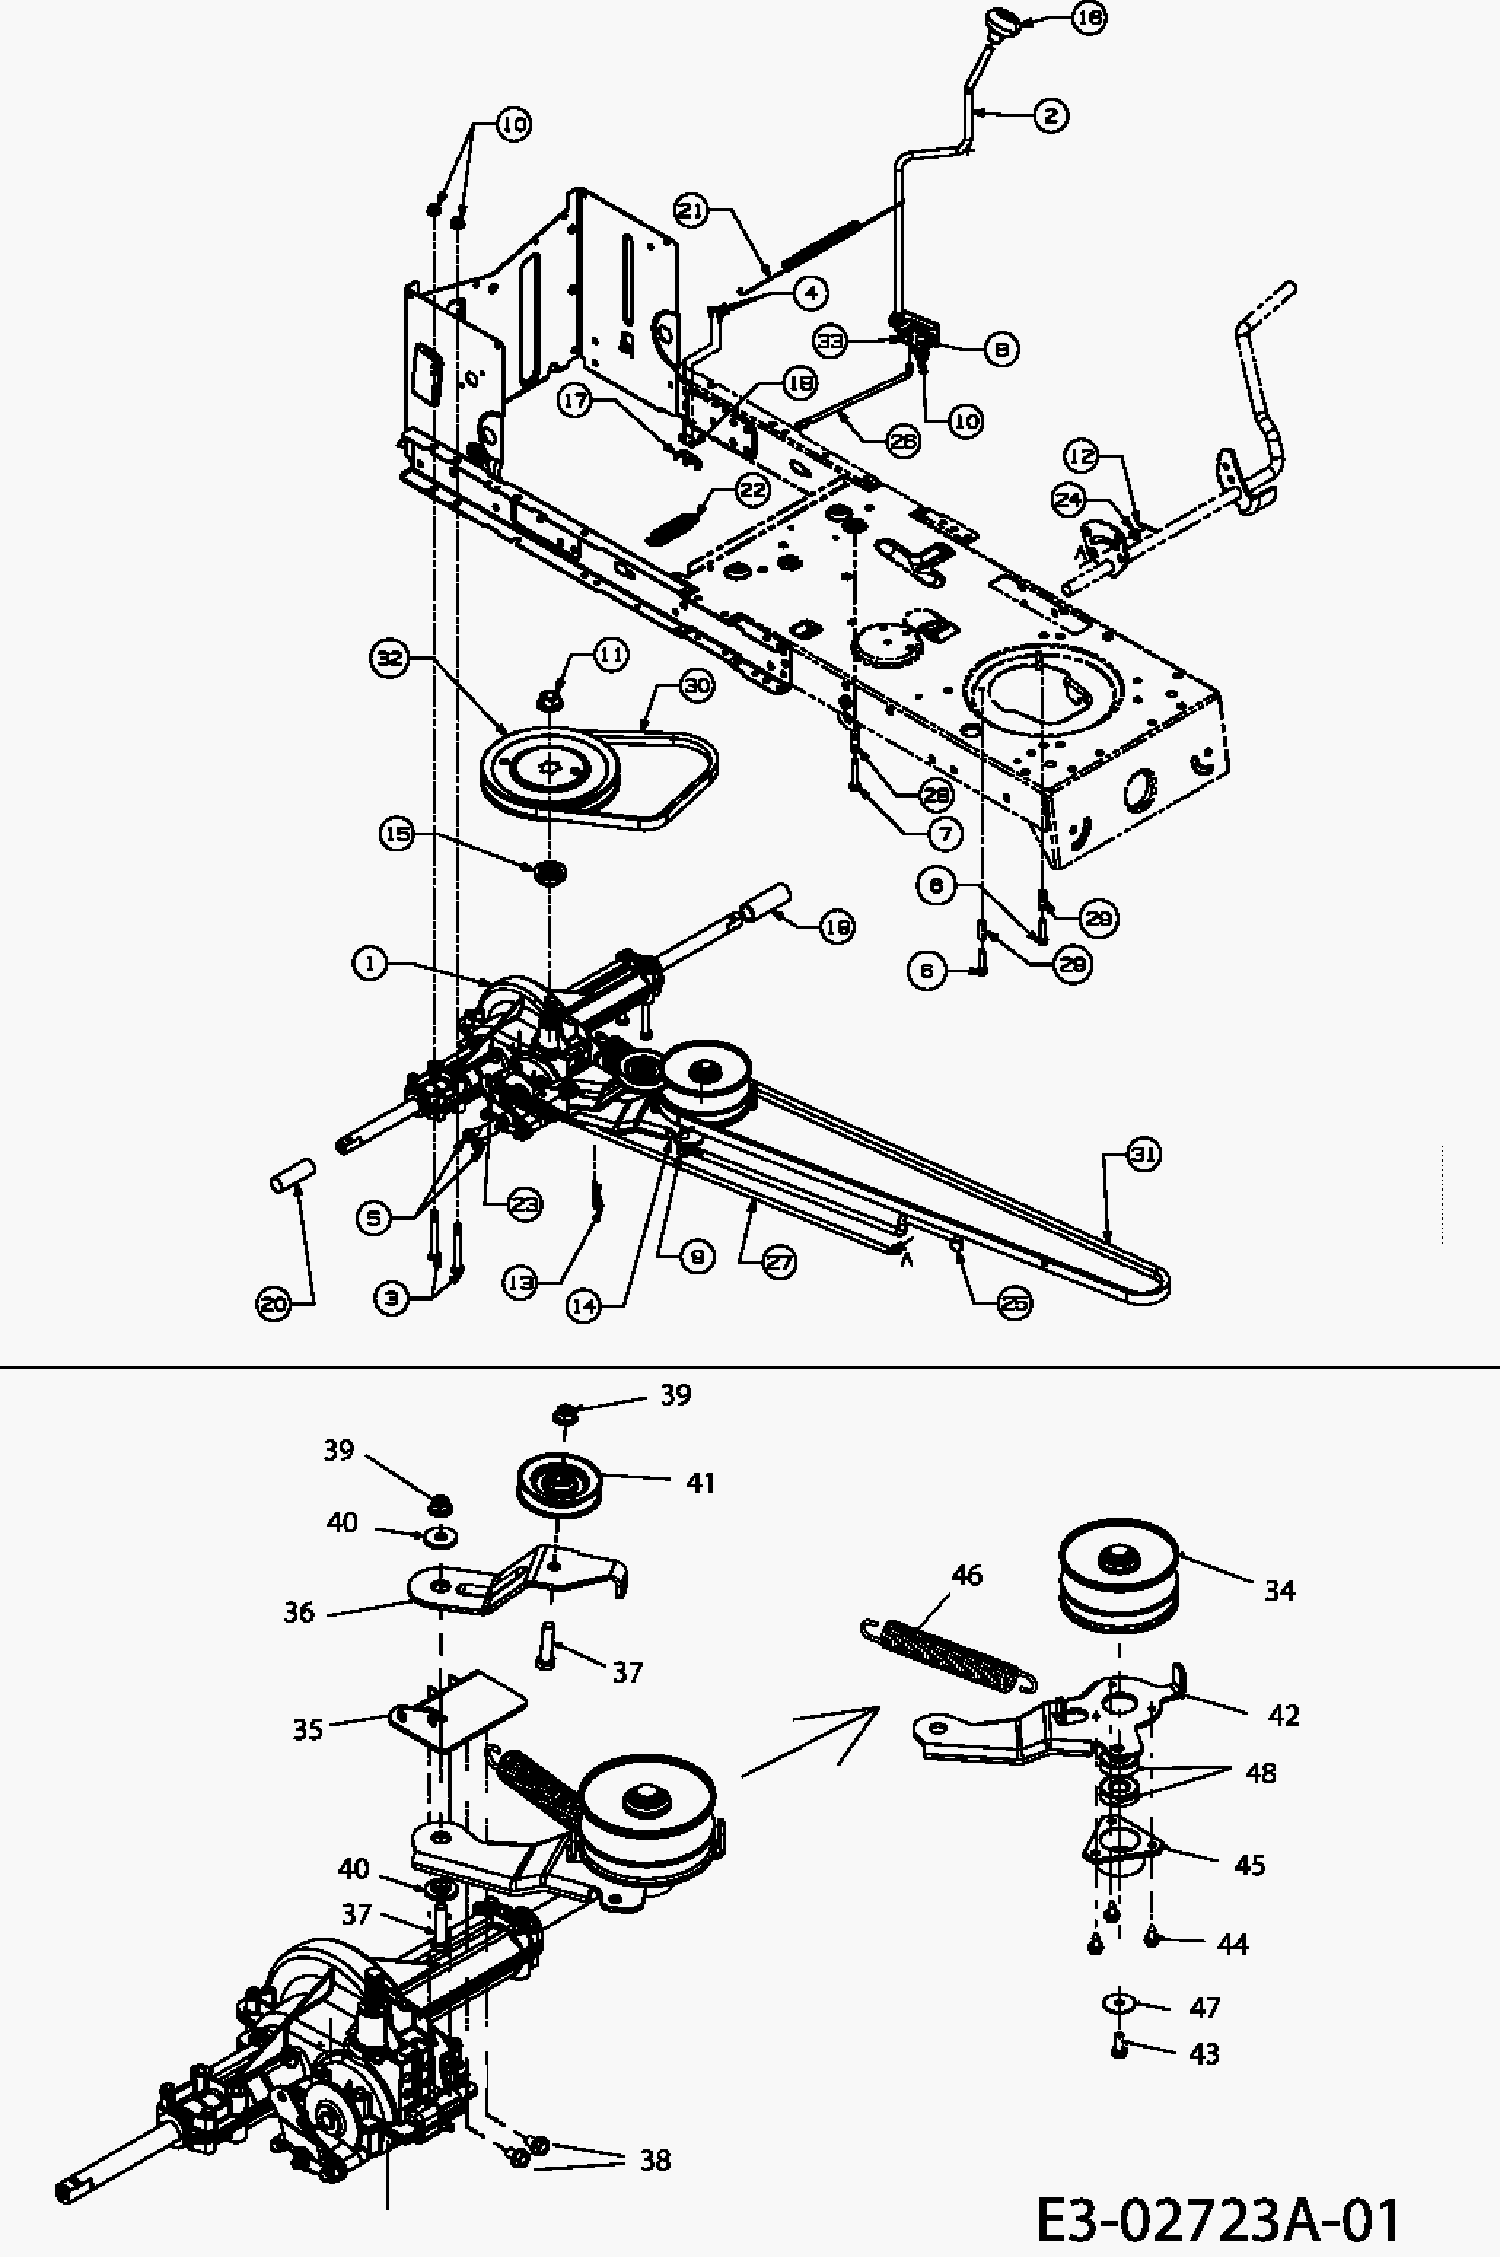 782489 Help Please Drive Belt Simplicity Zt1644 Hydro on simplicity lawn mower belt diagram